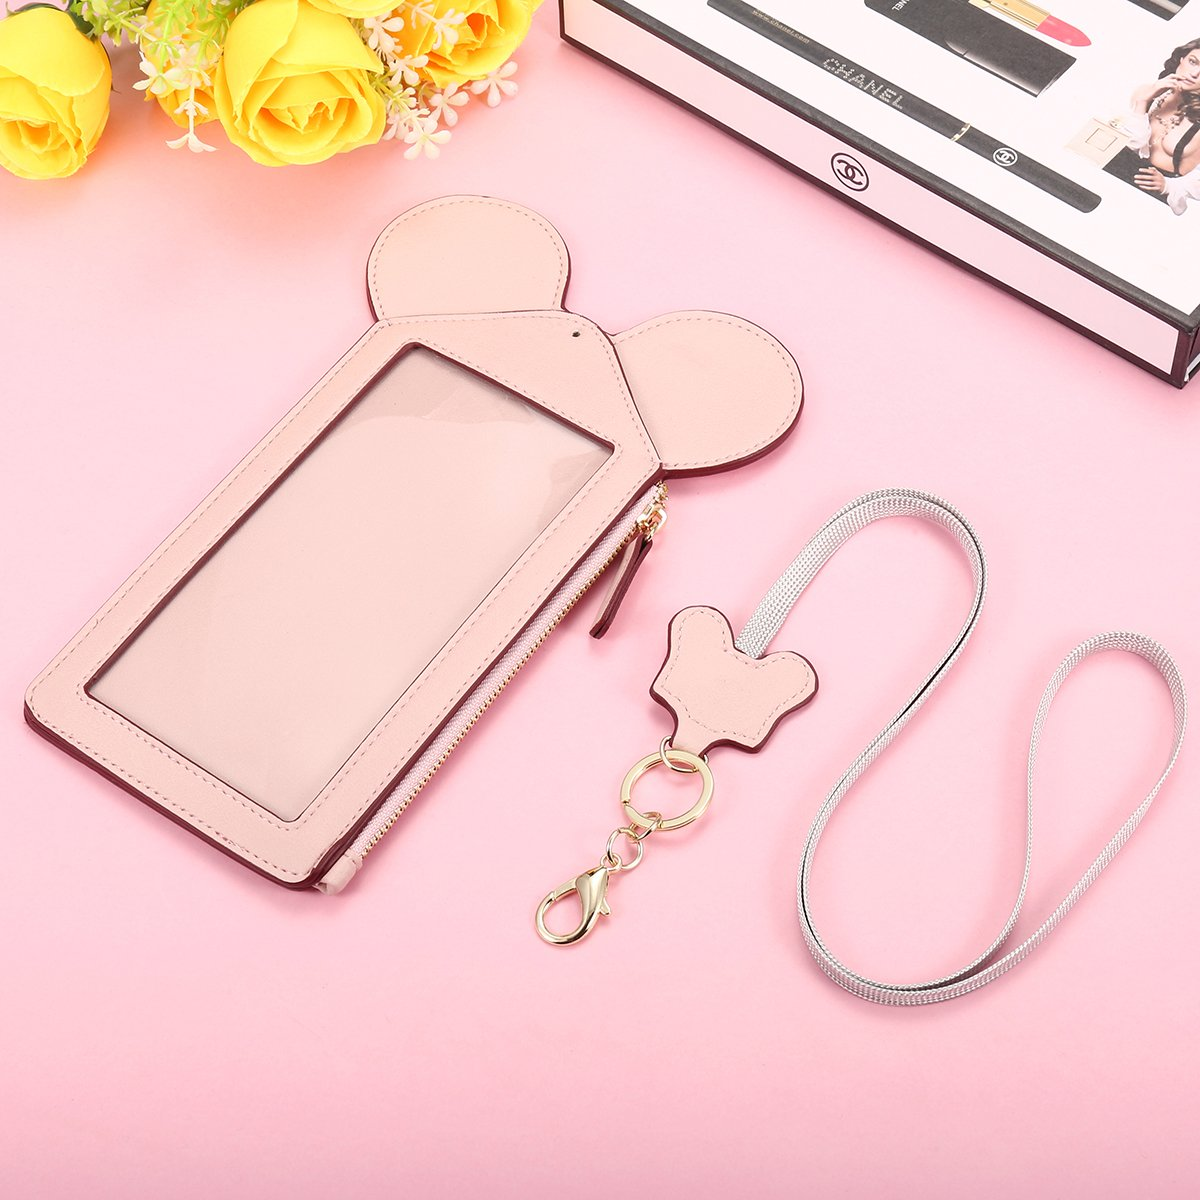 Neck Pouch, Charminer Women Cute Animal Shape Lanyard Phone Purse Neck Bag Travel Documents, Card Holder Coin Purse Neck Bag for 4.7/5.5in Phones Light Pink 4.7in by CHARMINER (Image #5)